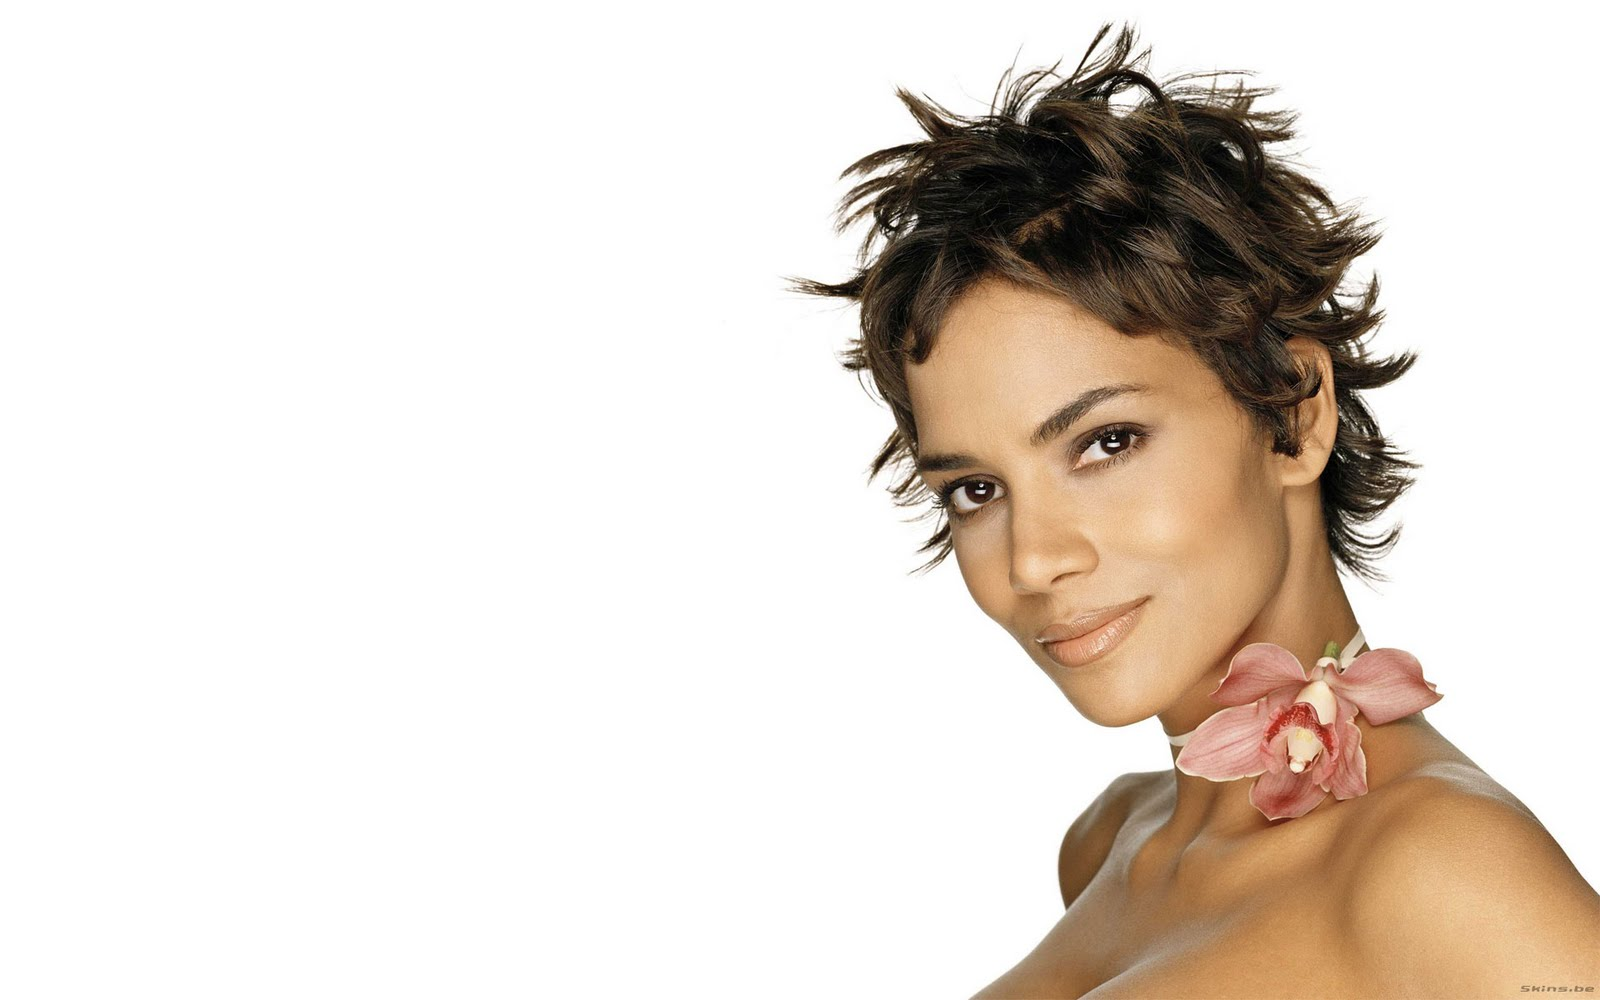 halle berry widescreen HD wallpaper 1920x1200